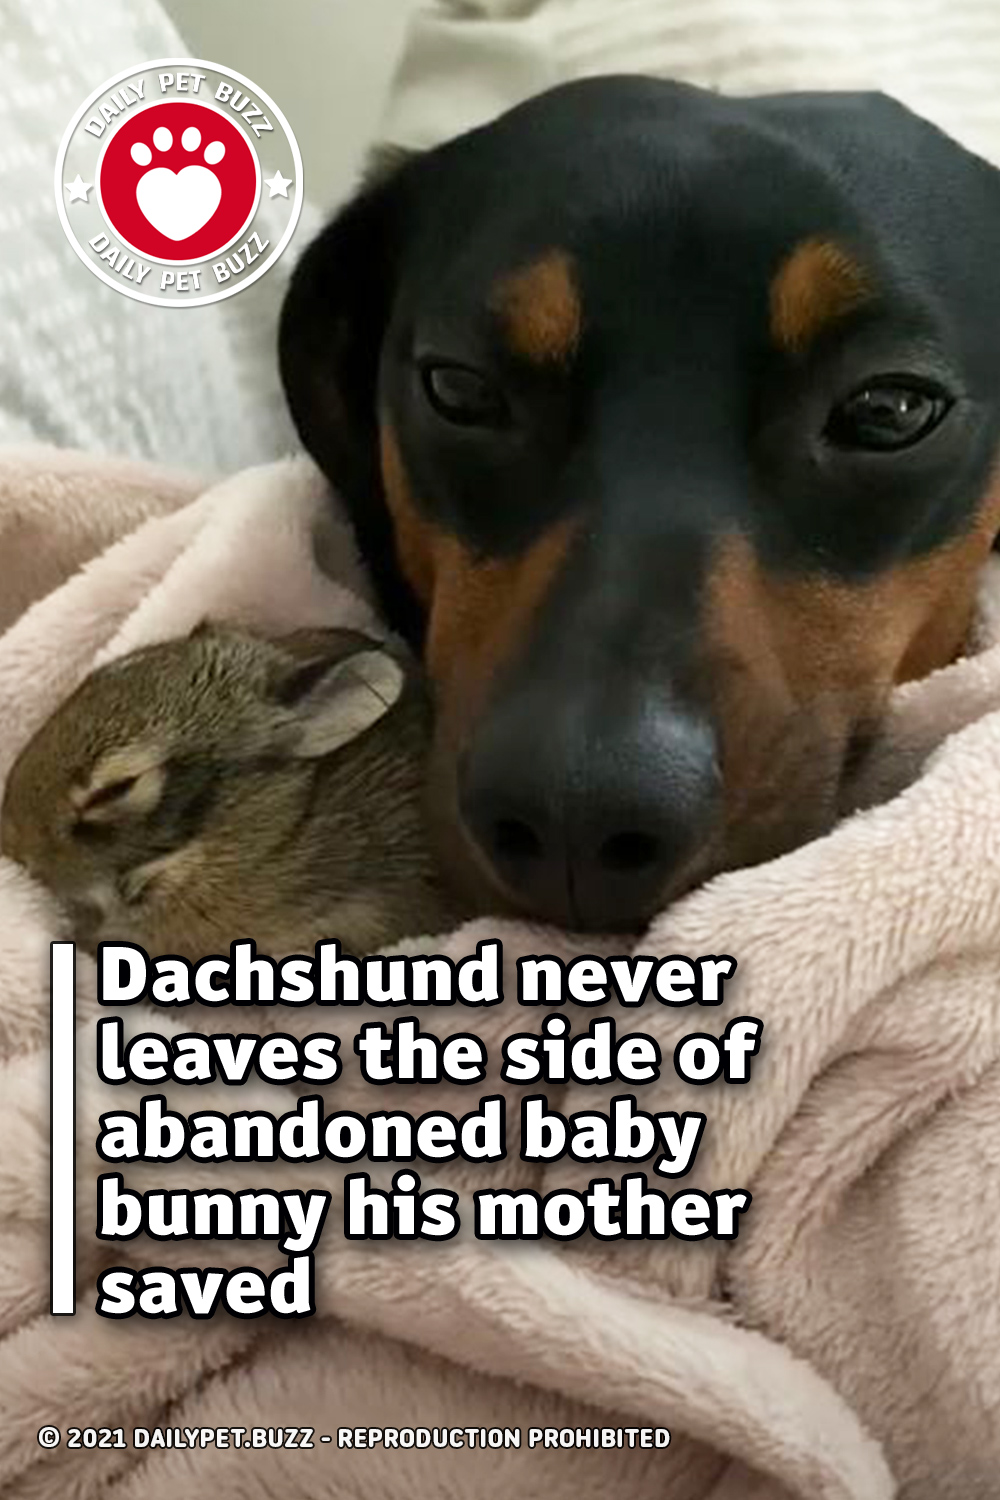 Dachshund never leaves the side of abandoned baby bunny his mother saved